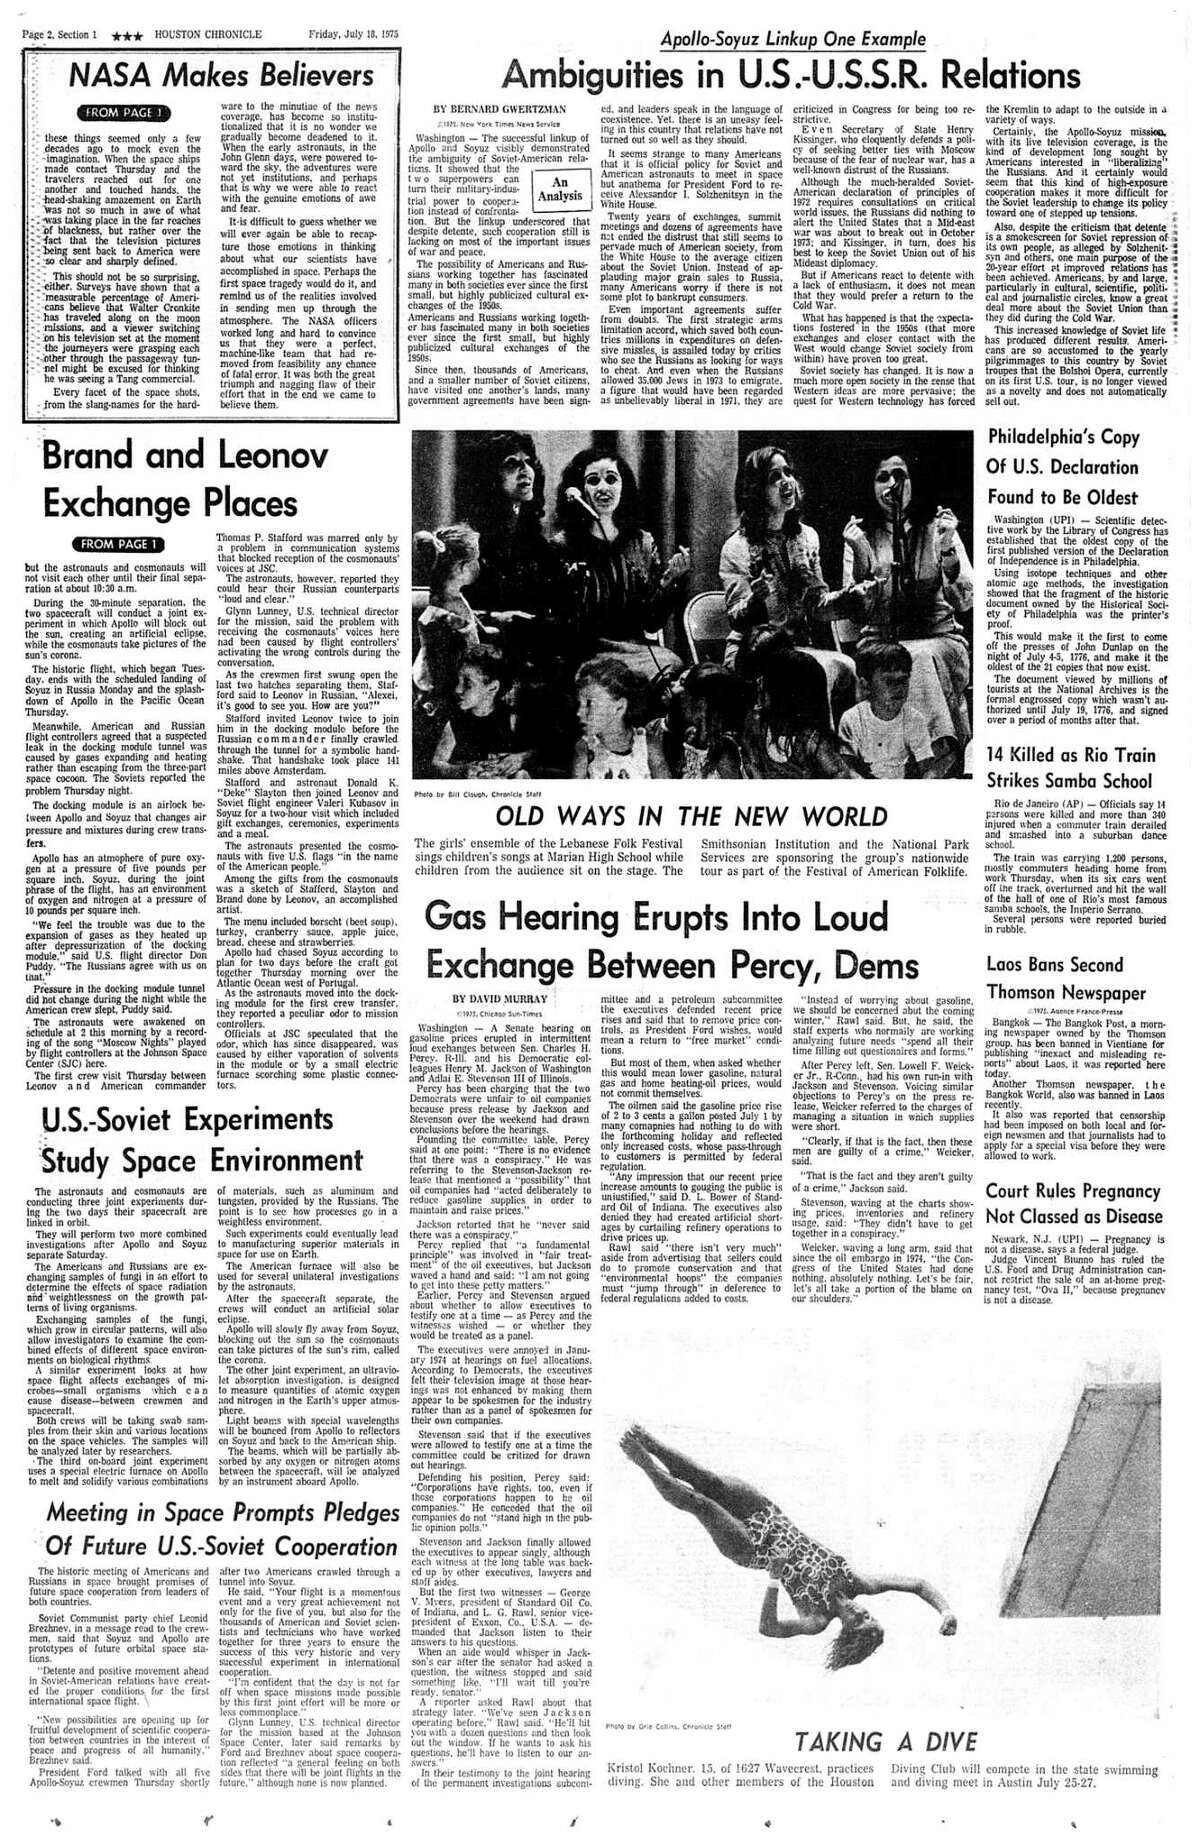 Houston Chronicle inside page - July 18, 1975 - section 1, page 6. NASA Makes Believers. Brand and Leonov Exchange Places. Apollo-Soyuz Linkup One Example. Ambiguities in U.S.-U.S.S.R. Relations. U.S.-Soviet Experiments Study Space Environment. Meeting in Space Prompts Pledges Of Future U.S.-Soviet Cooperation